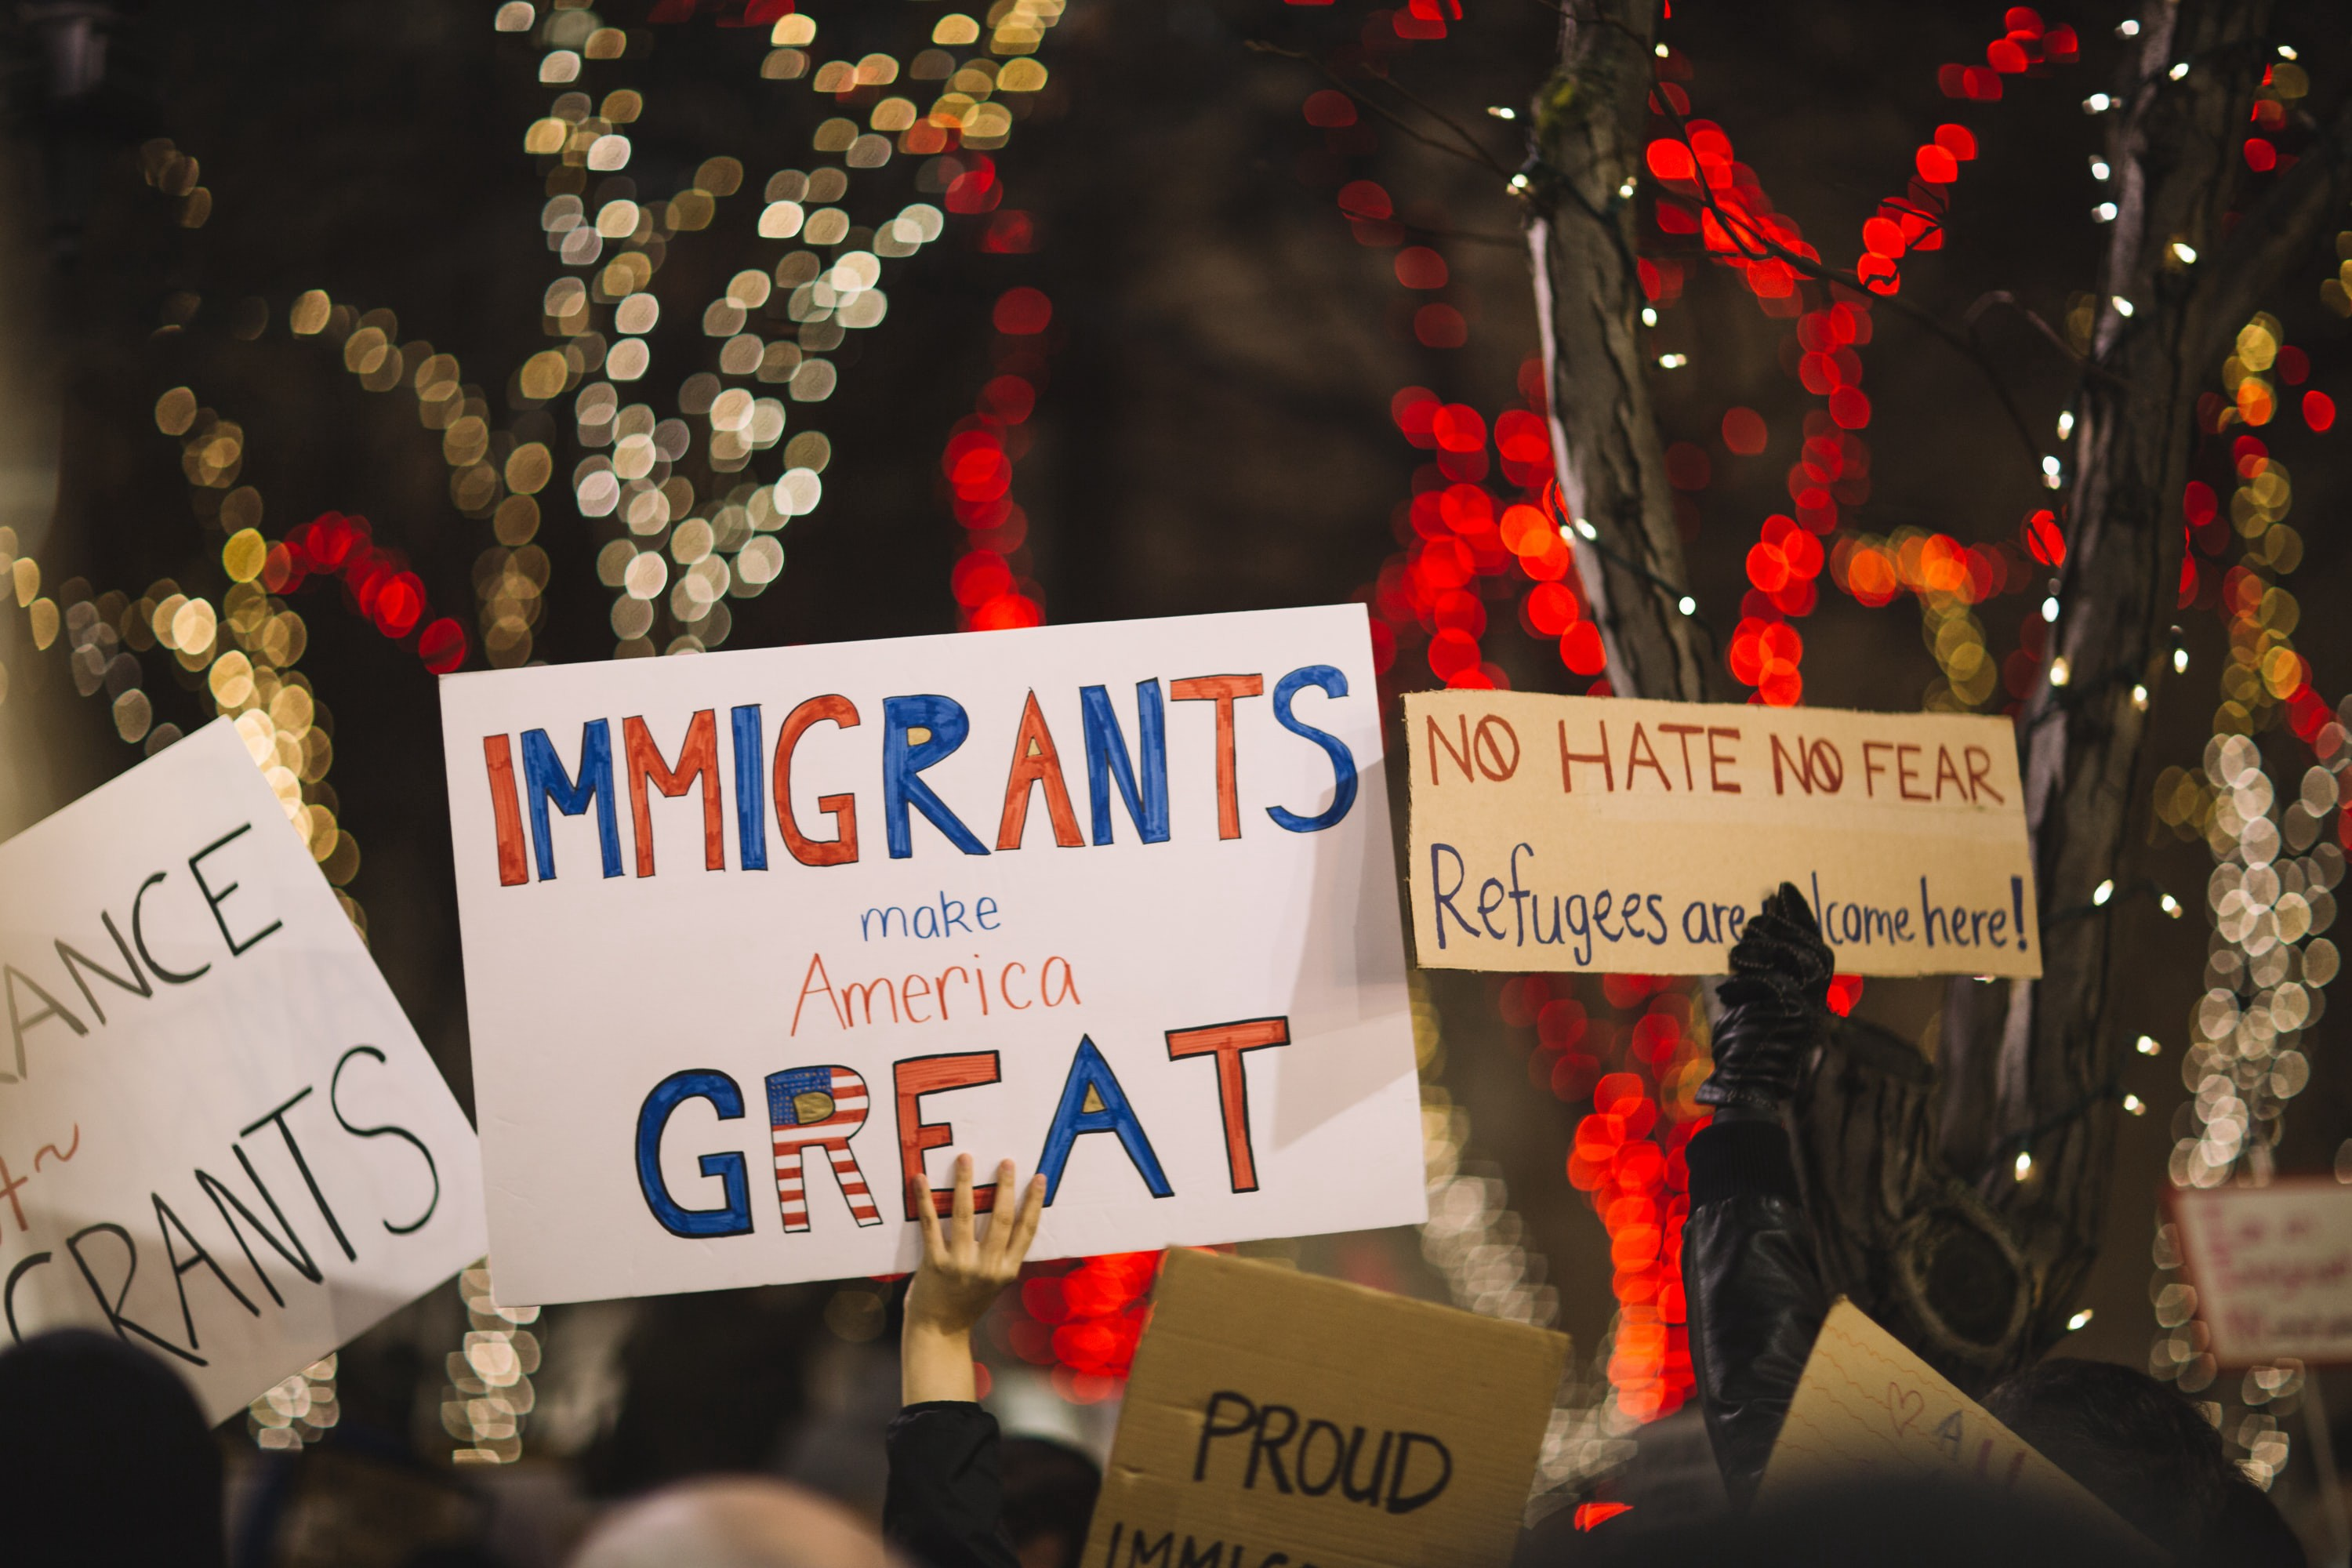 A picture of people manifesting and welcoming immigrants and refugees in America